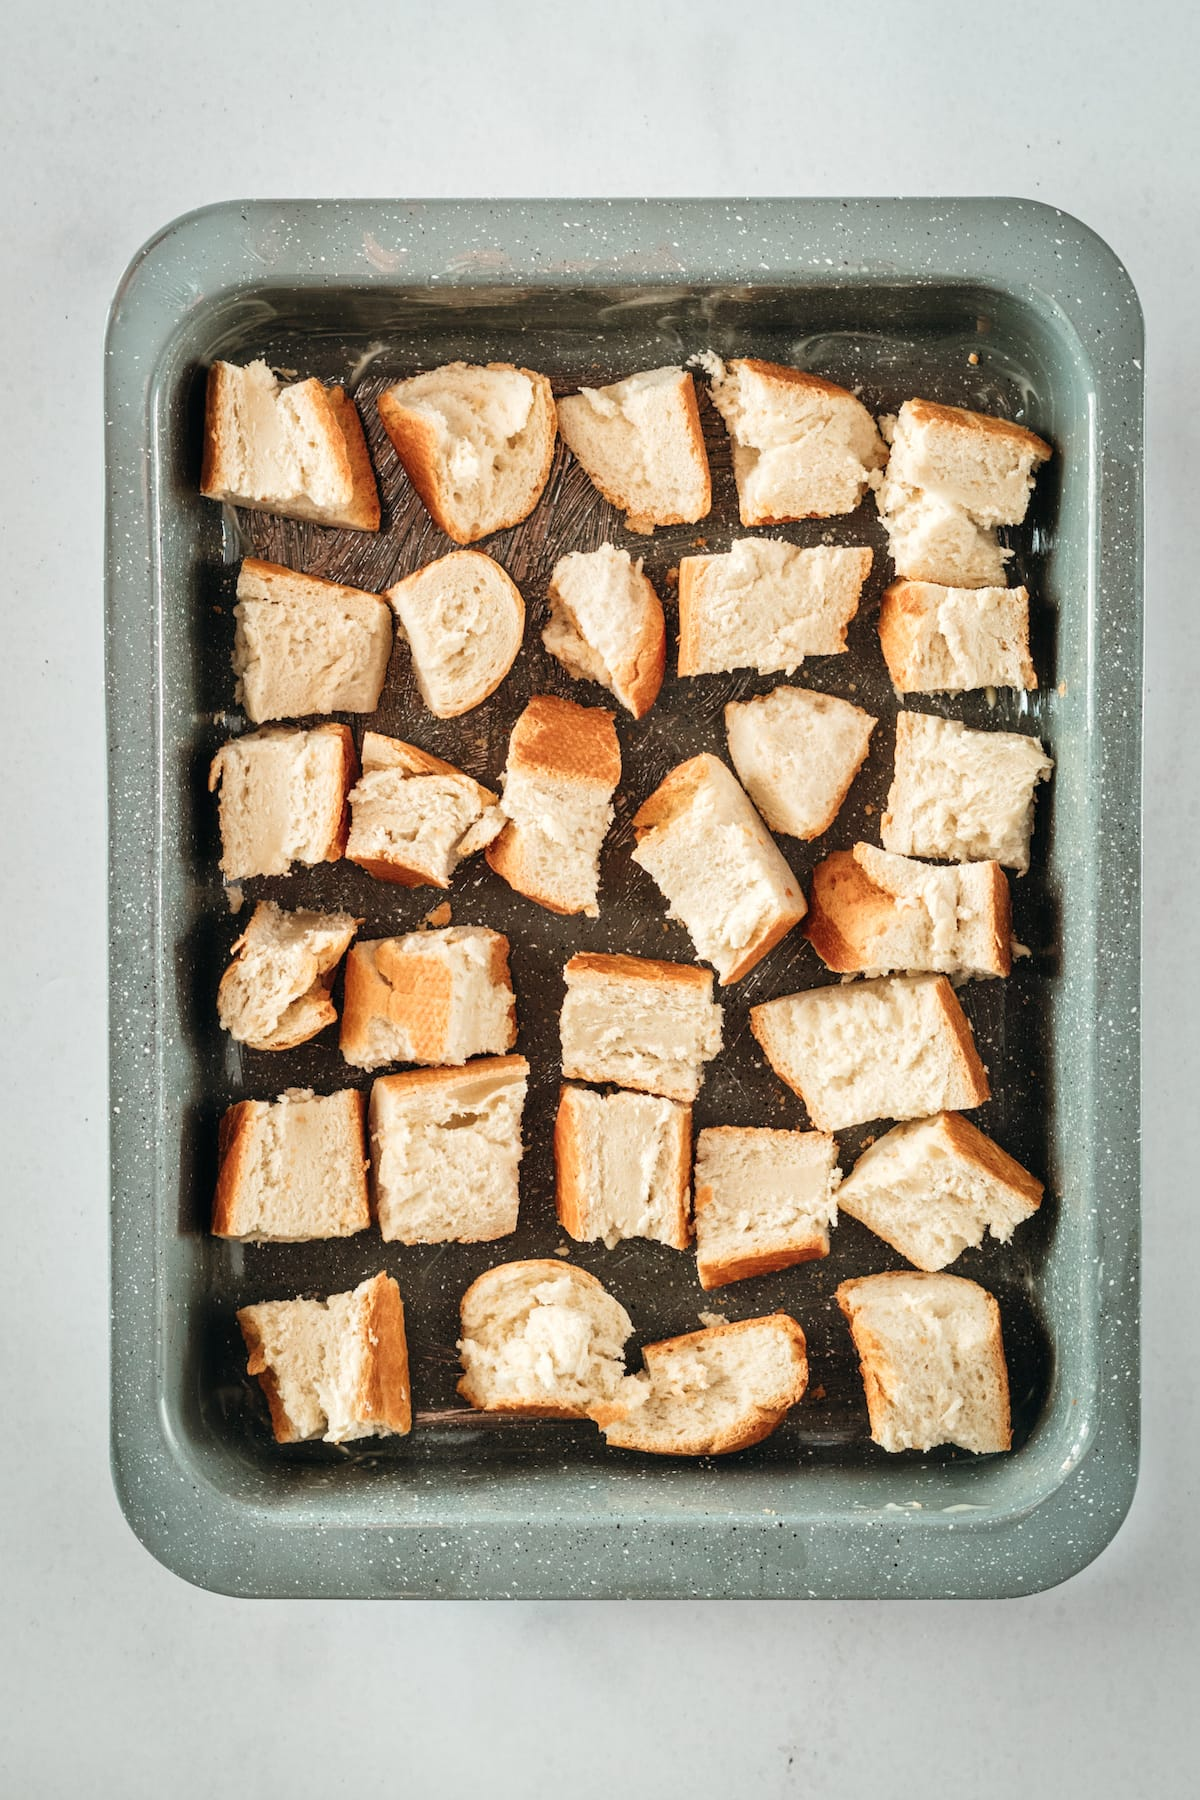 Overhead shot of cubed bread in baking dish